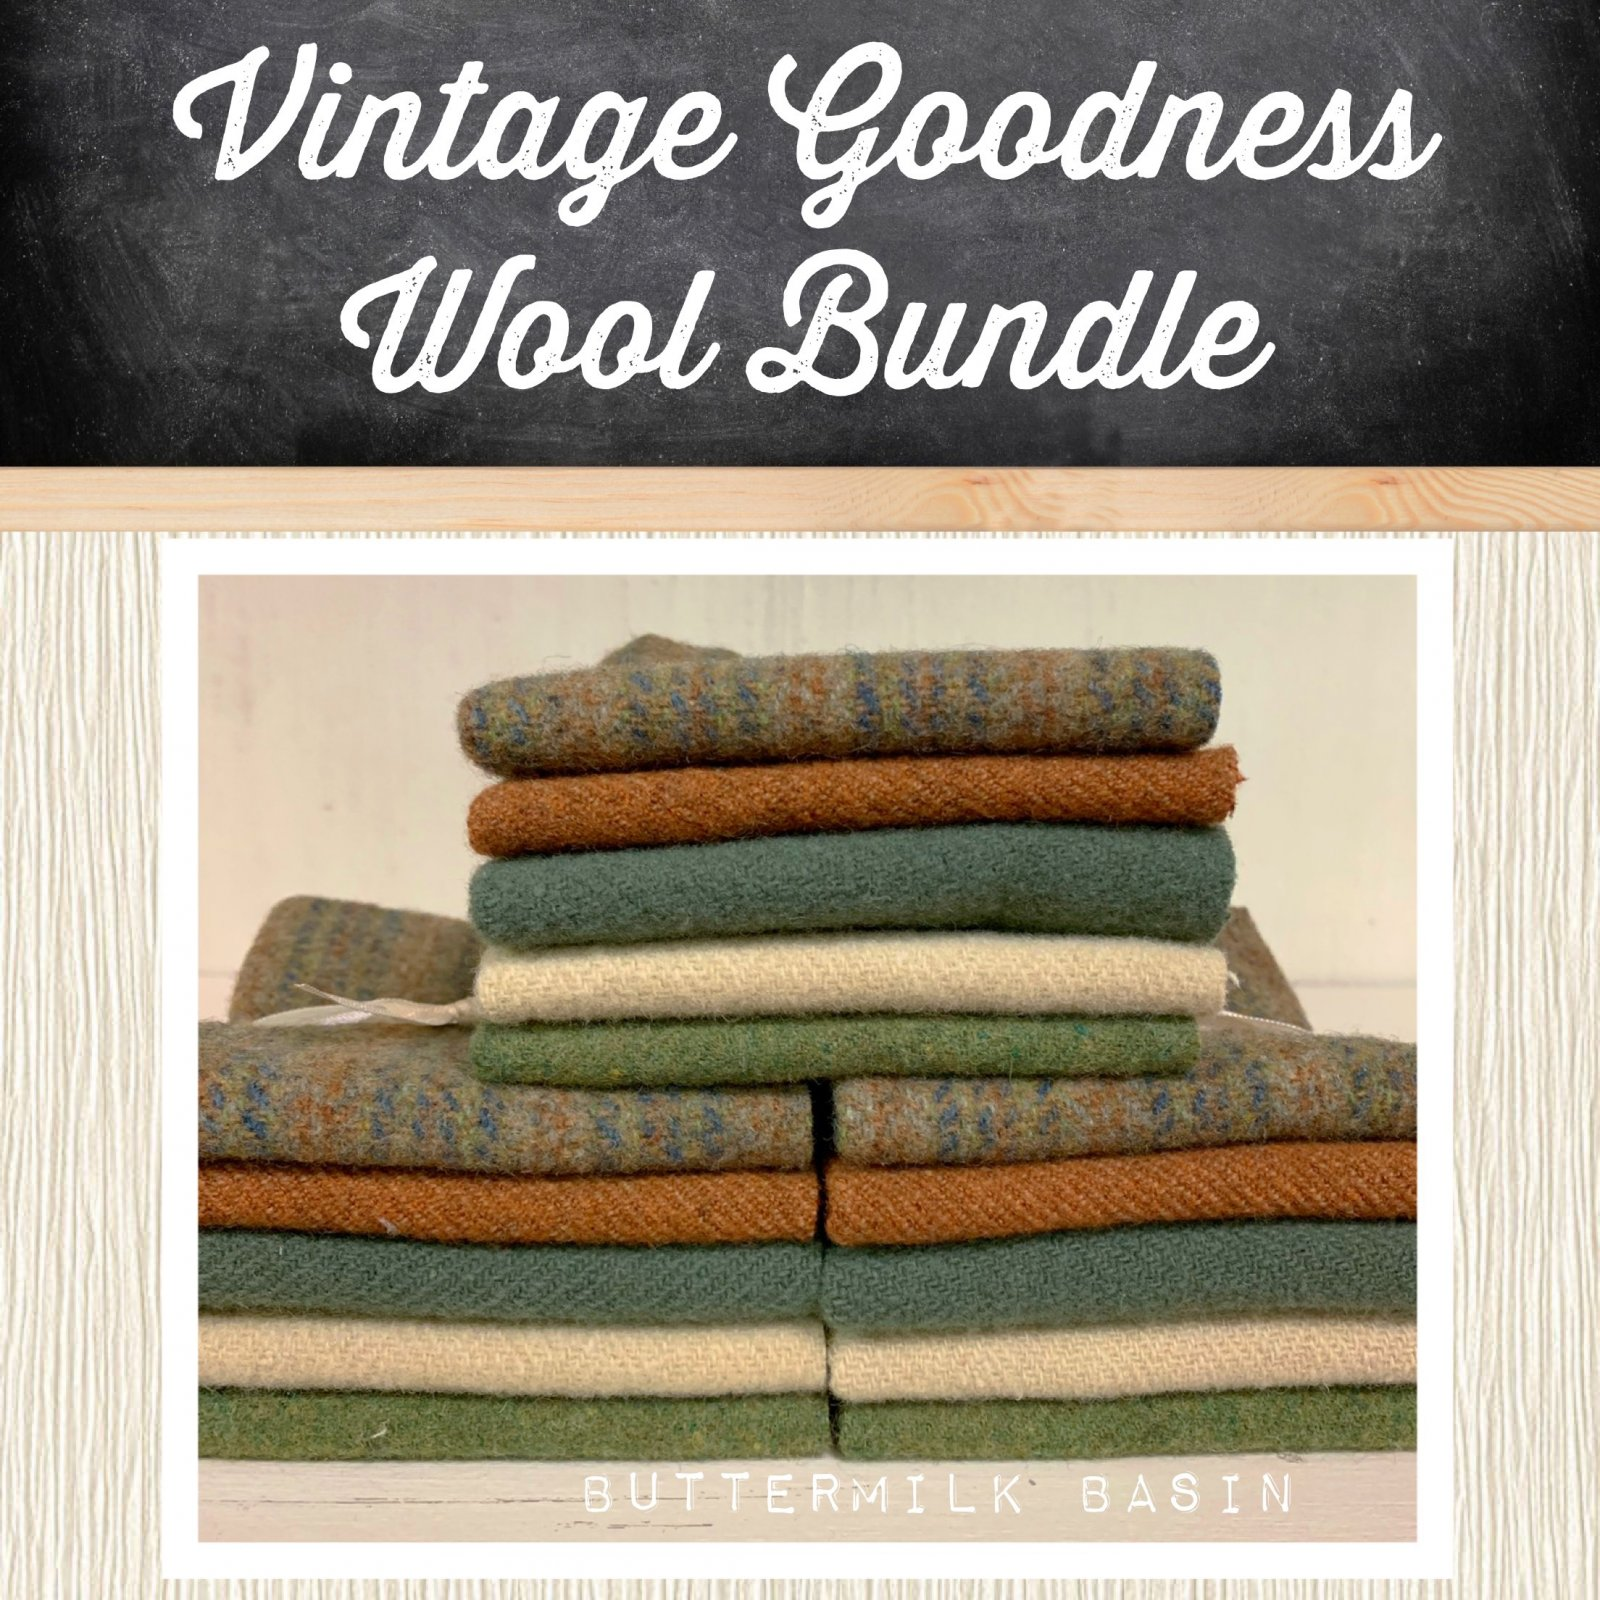 Vintage Goodness Wool Bundle